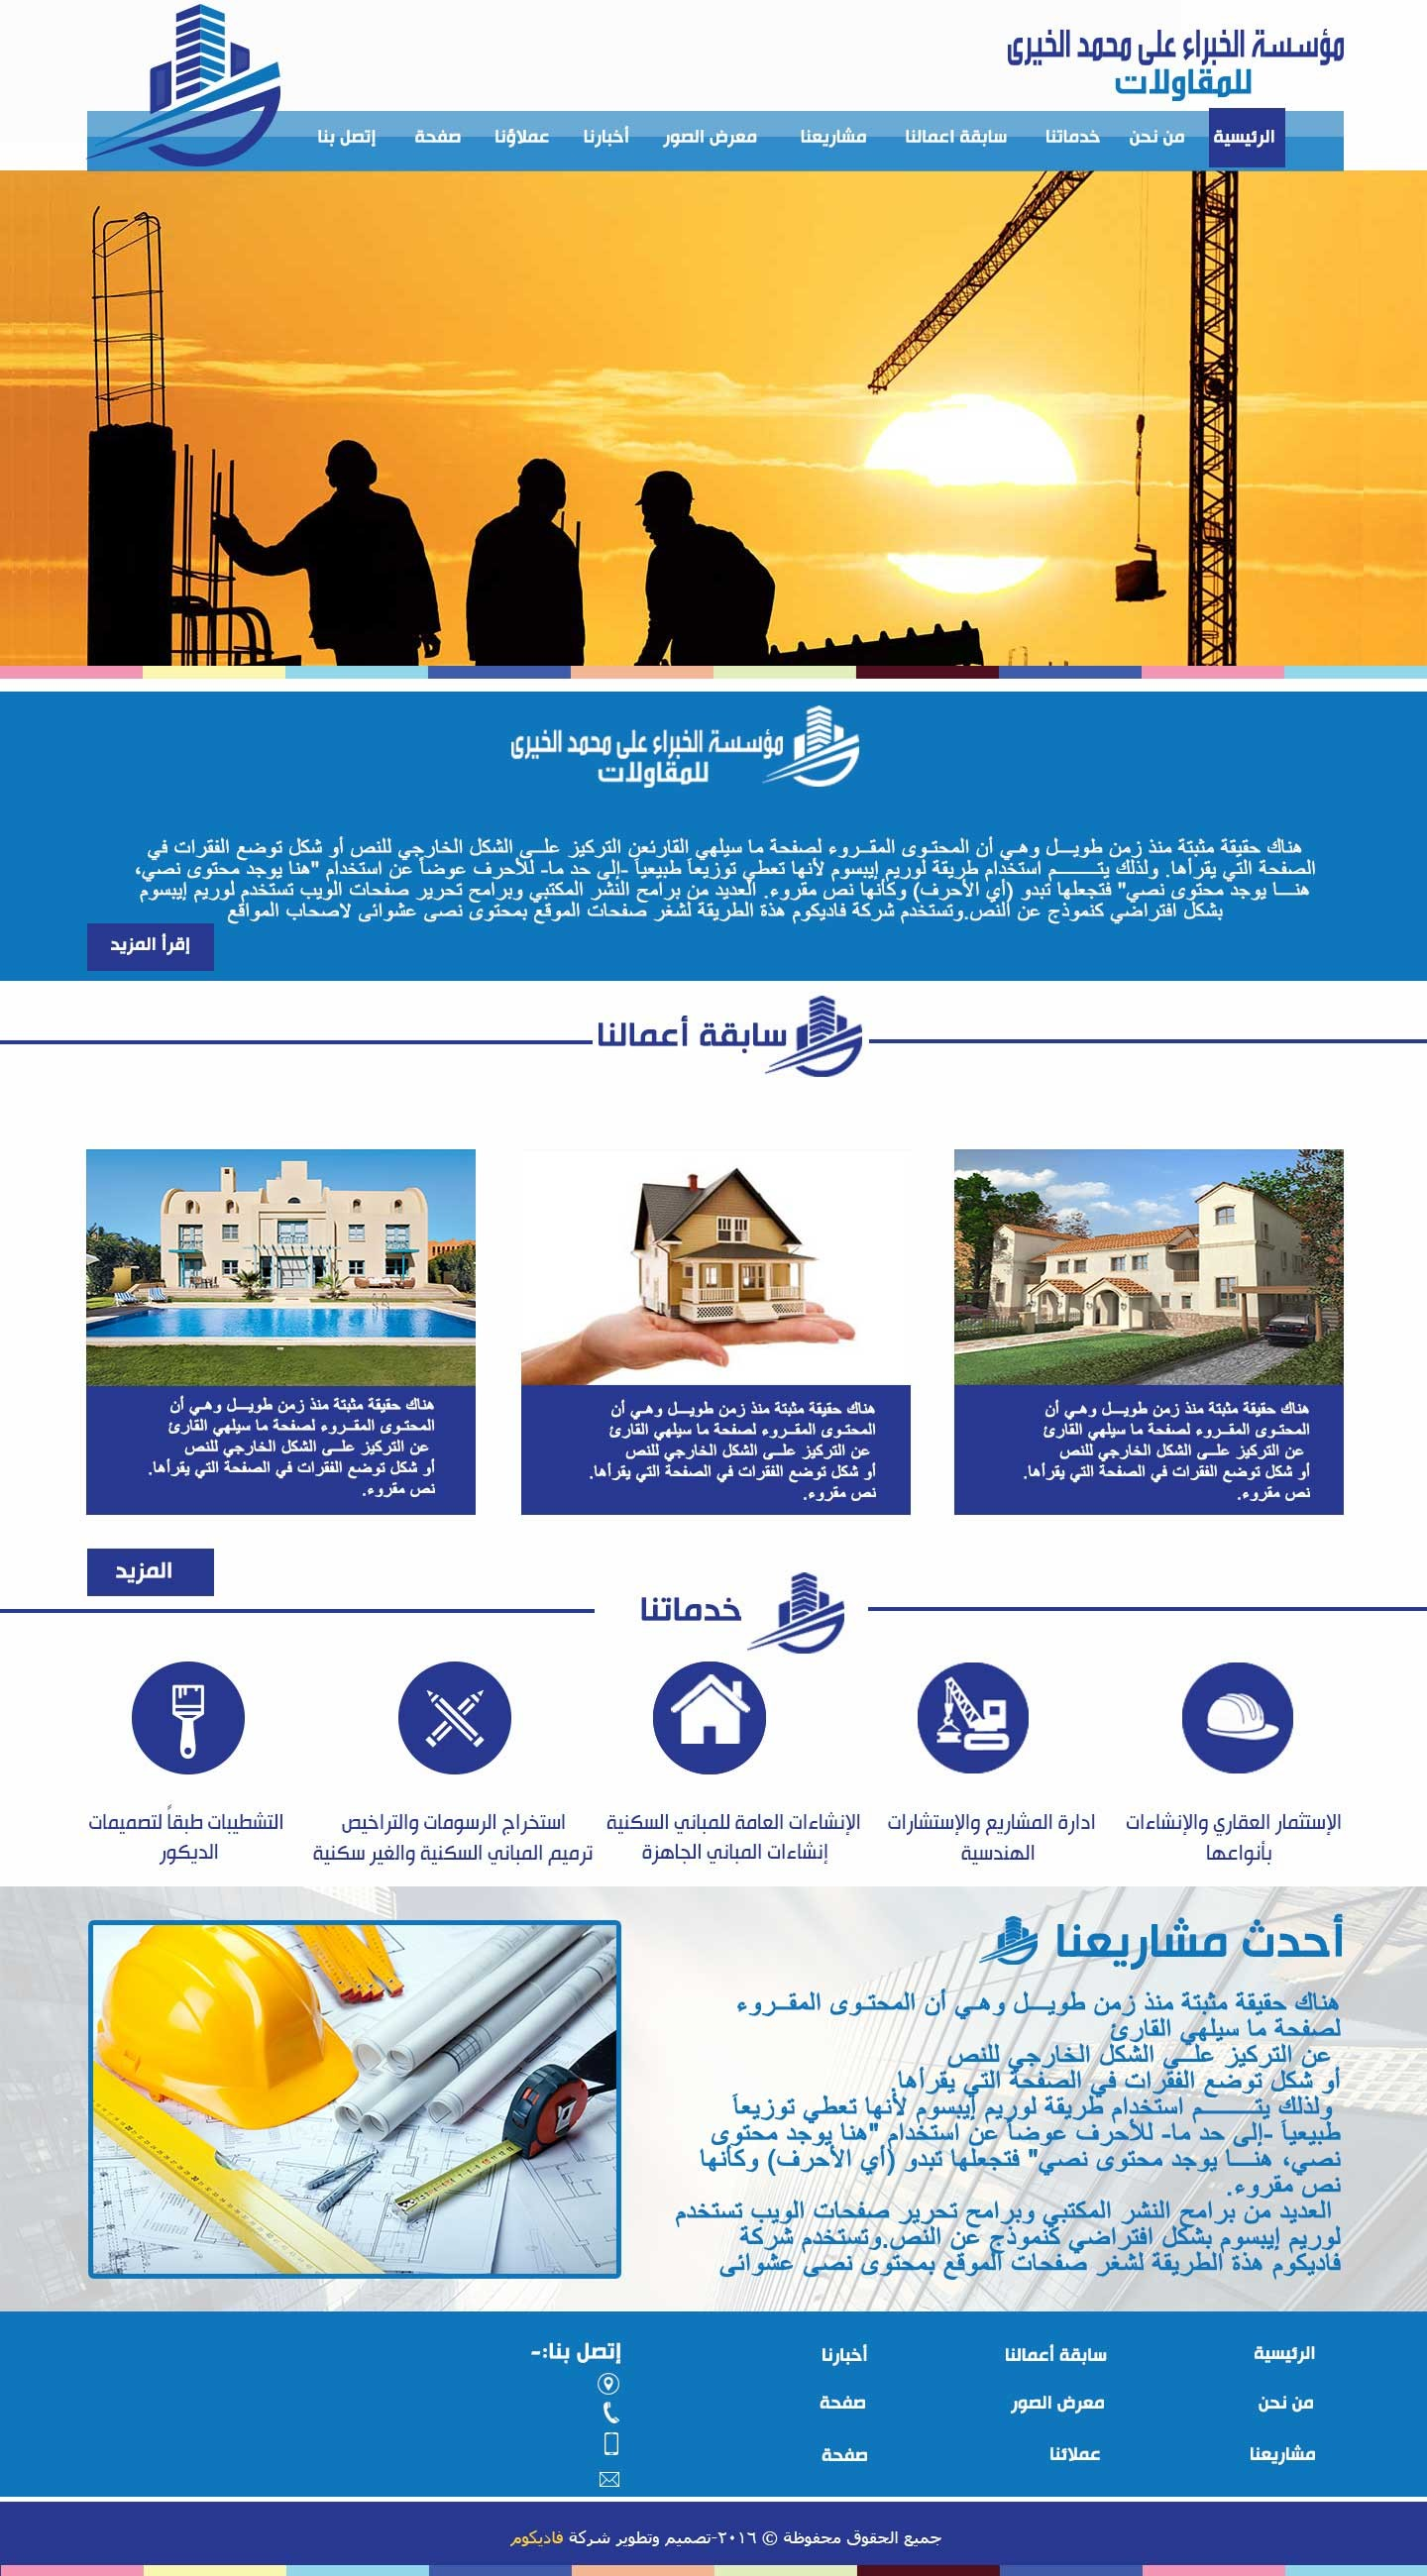 website design alkhubaraa